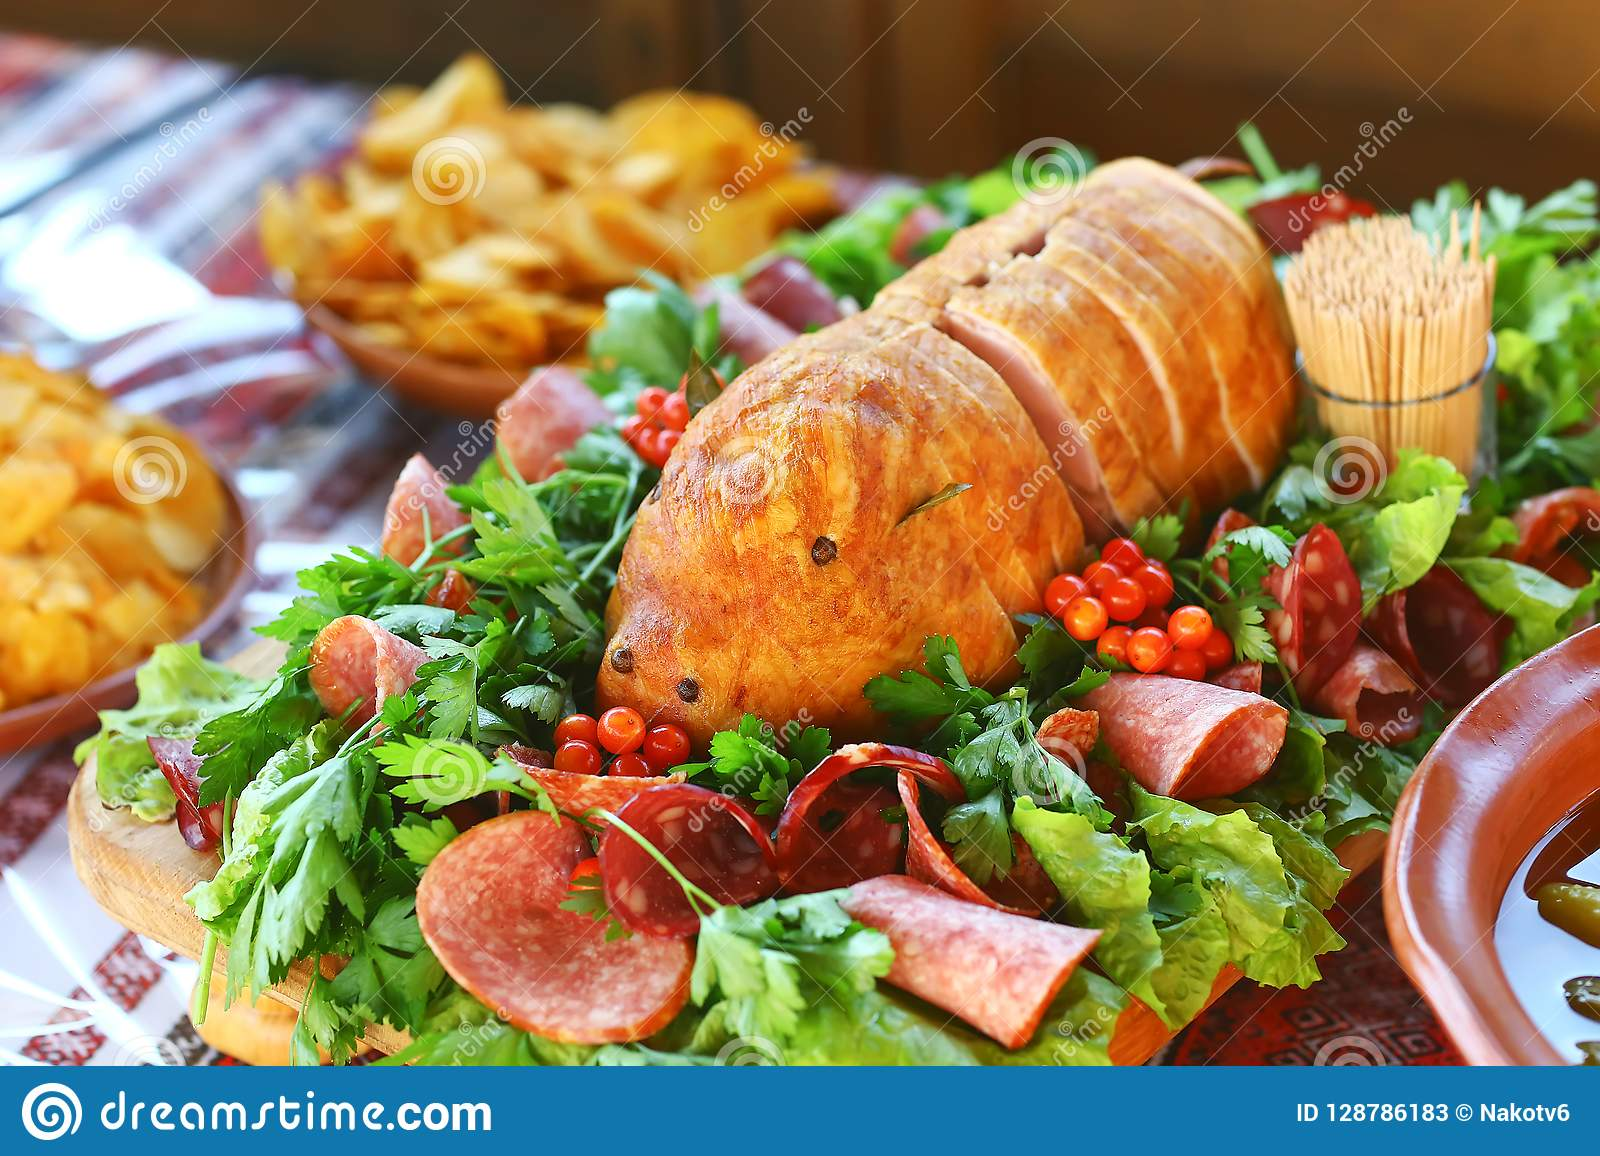 Catering Buffet Food Dish with Meat and Colorful vegetables on a Table